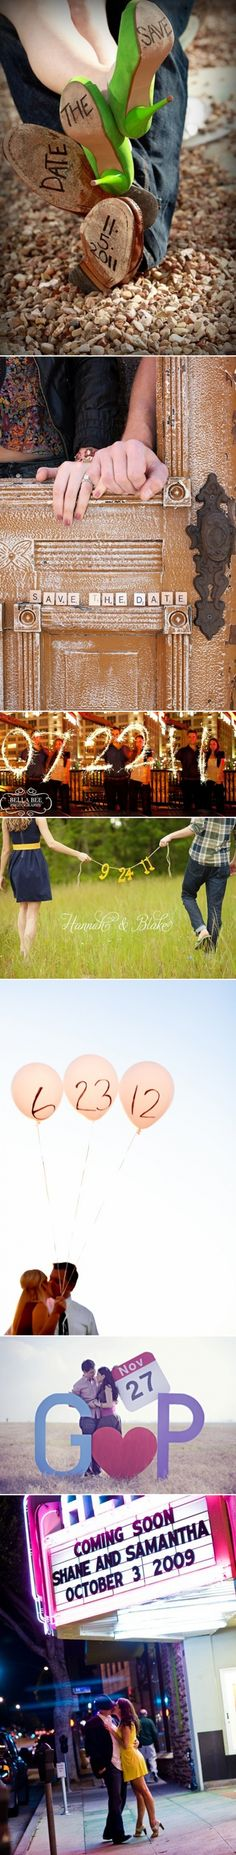 Save the date pic ideas